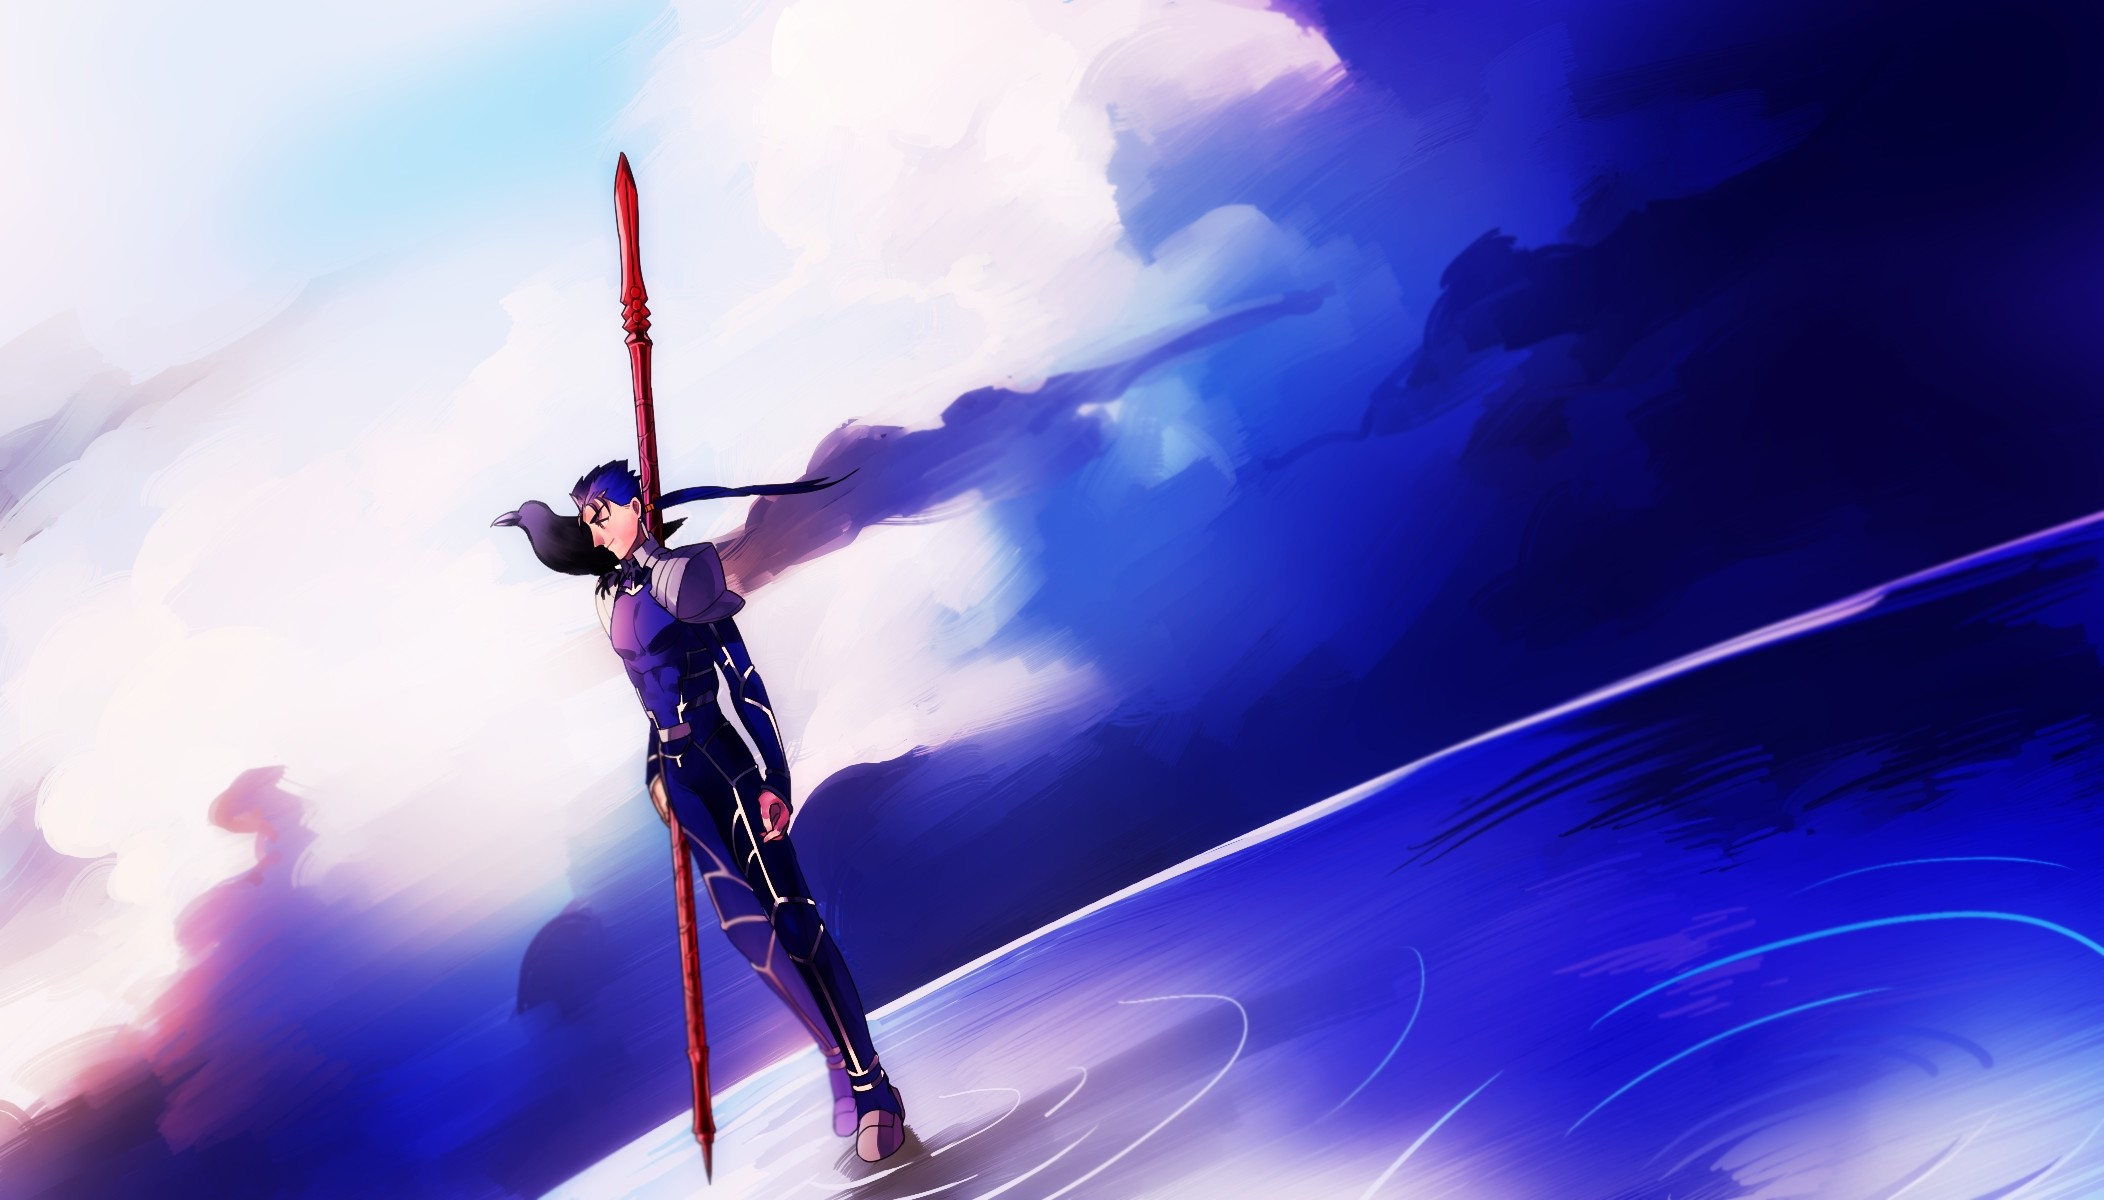 … download Lancer (Fate/stay night) image